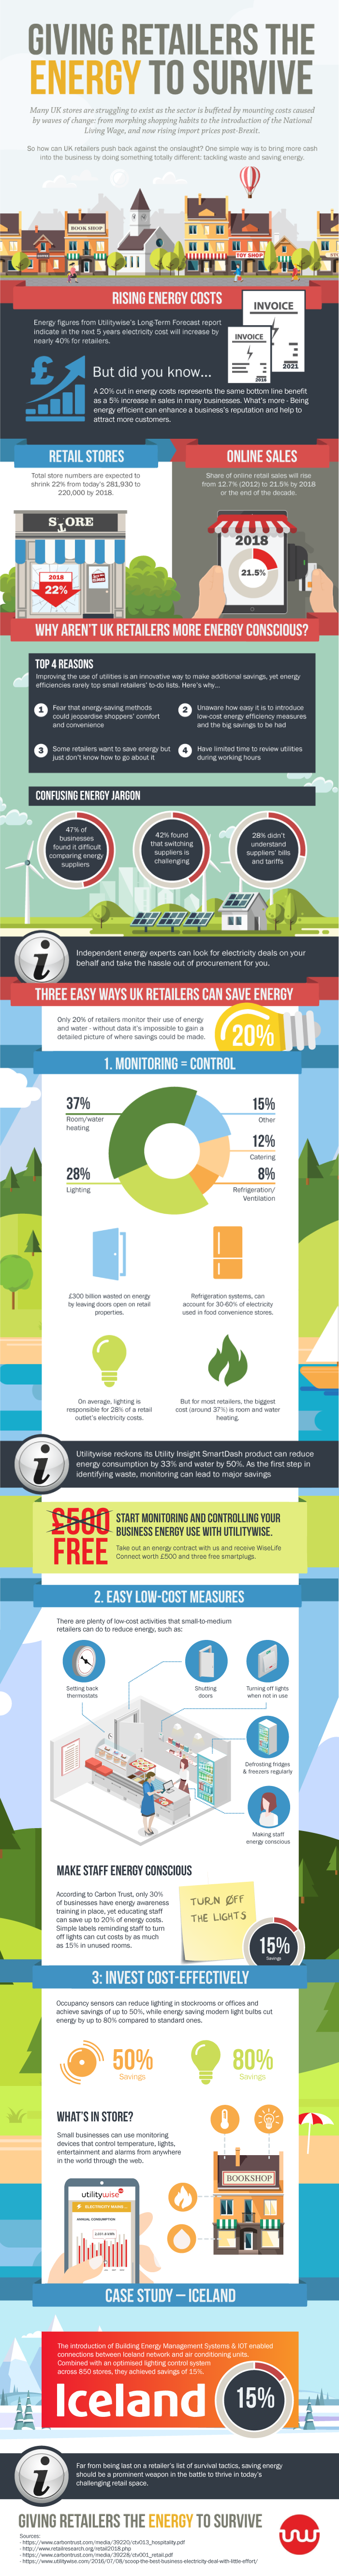 RetailEnergyUsageInfographic-Utilitywise